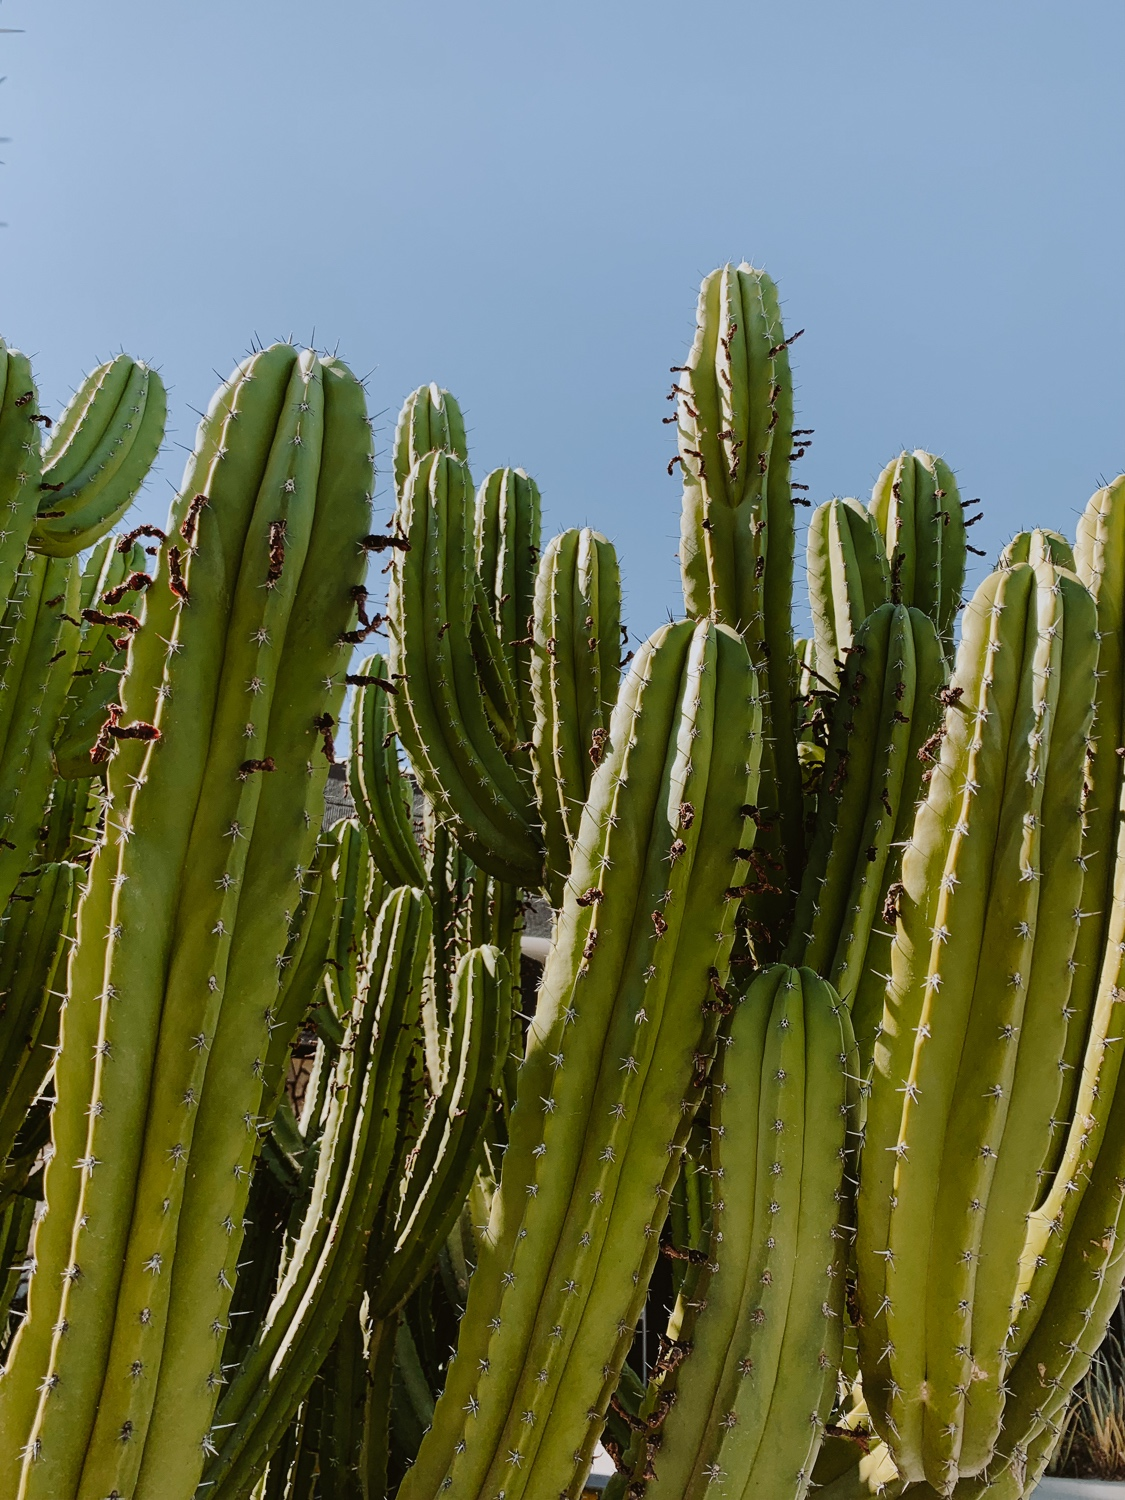 ace_hotel_palm_springs_cactus.jpg